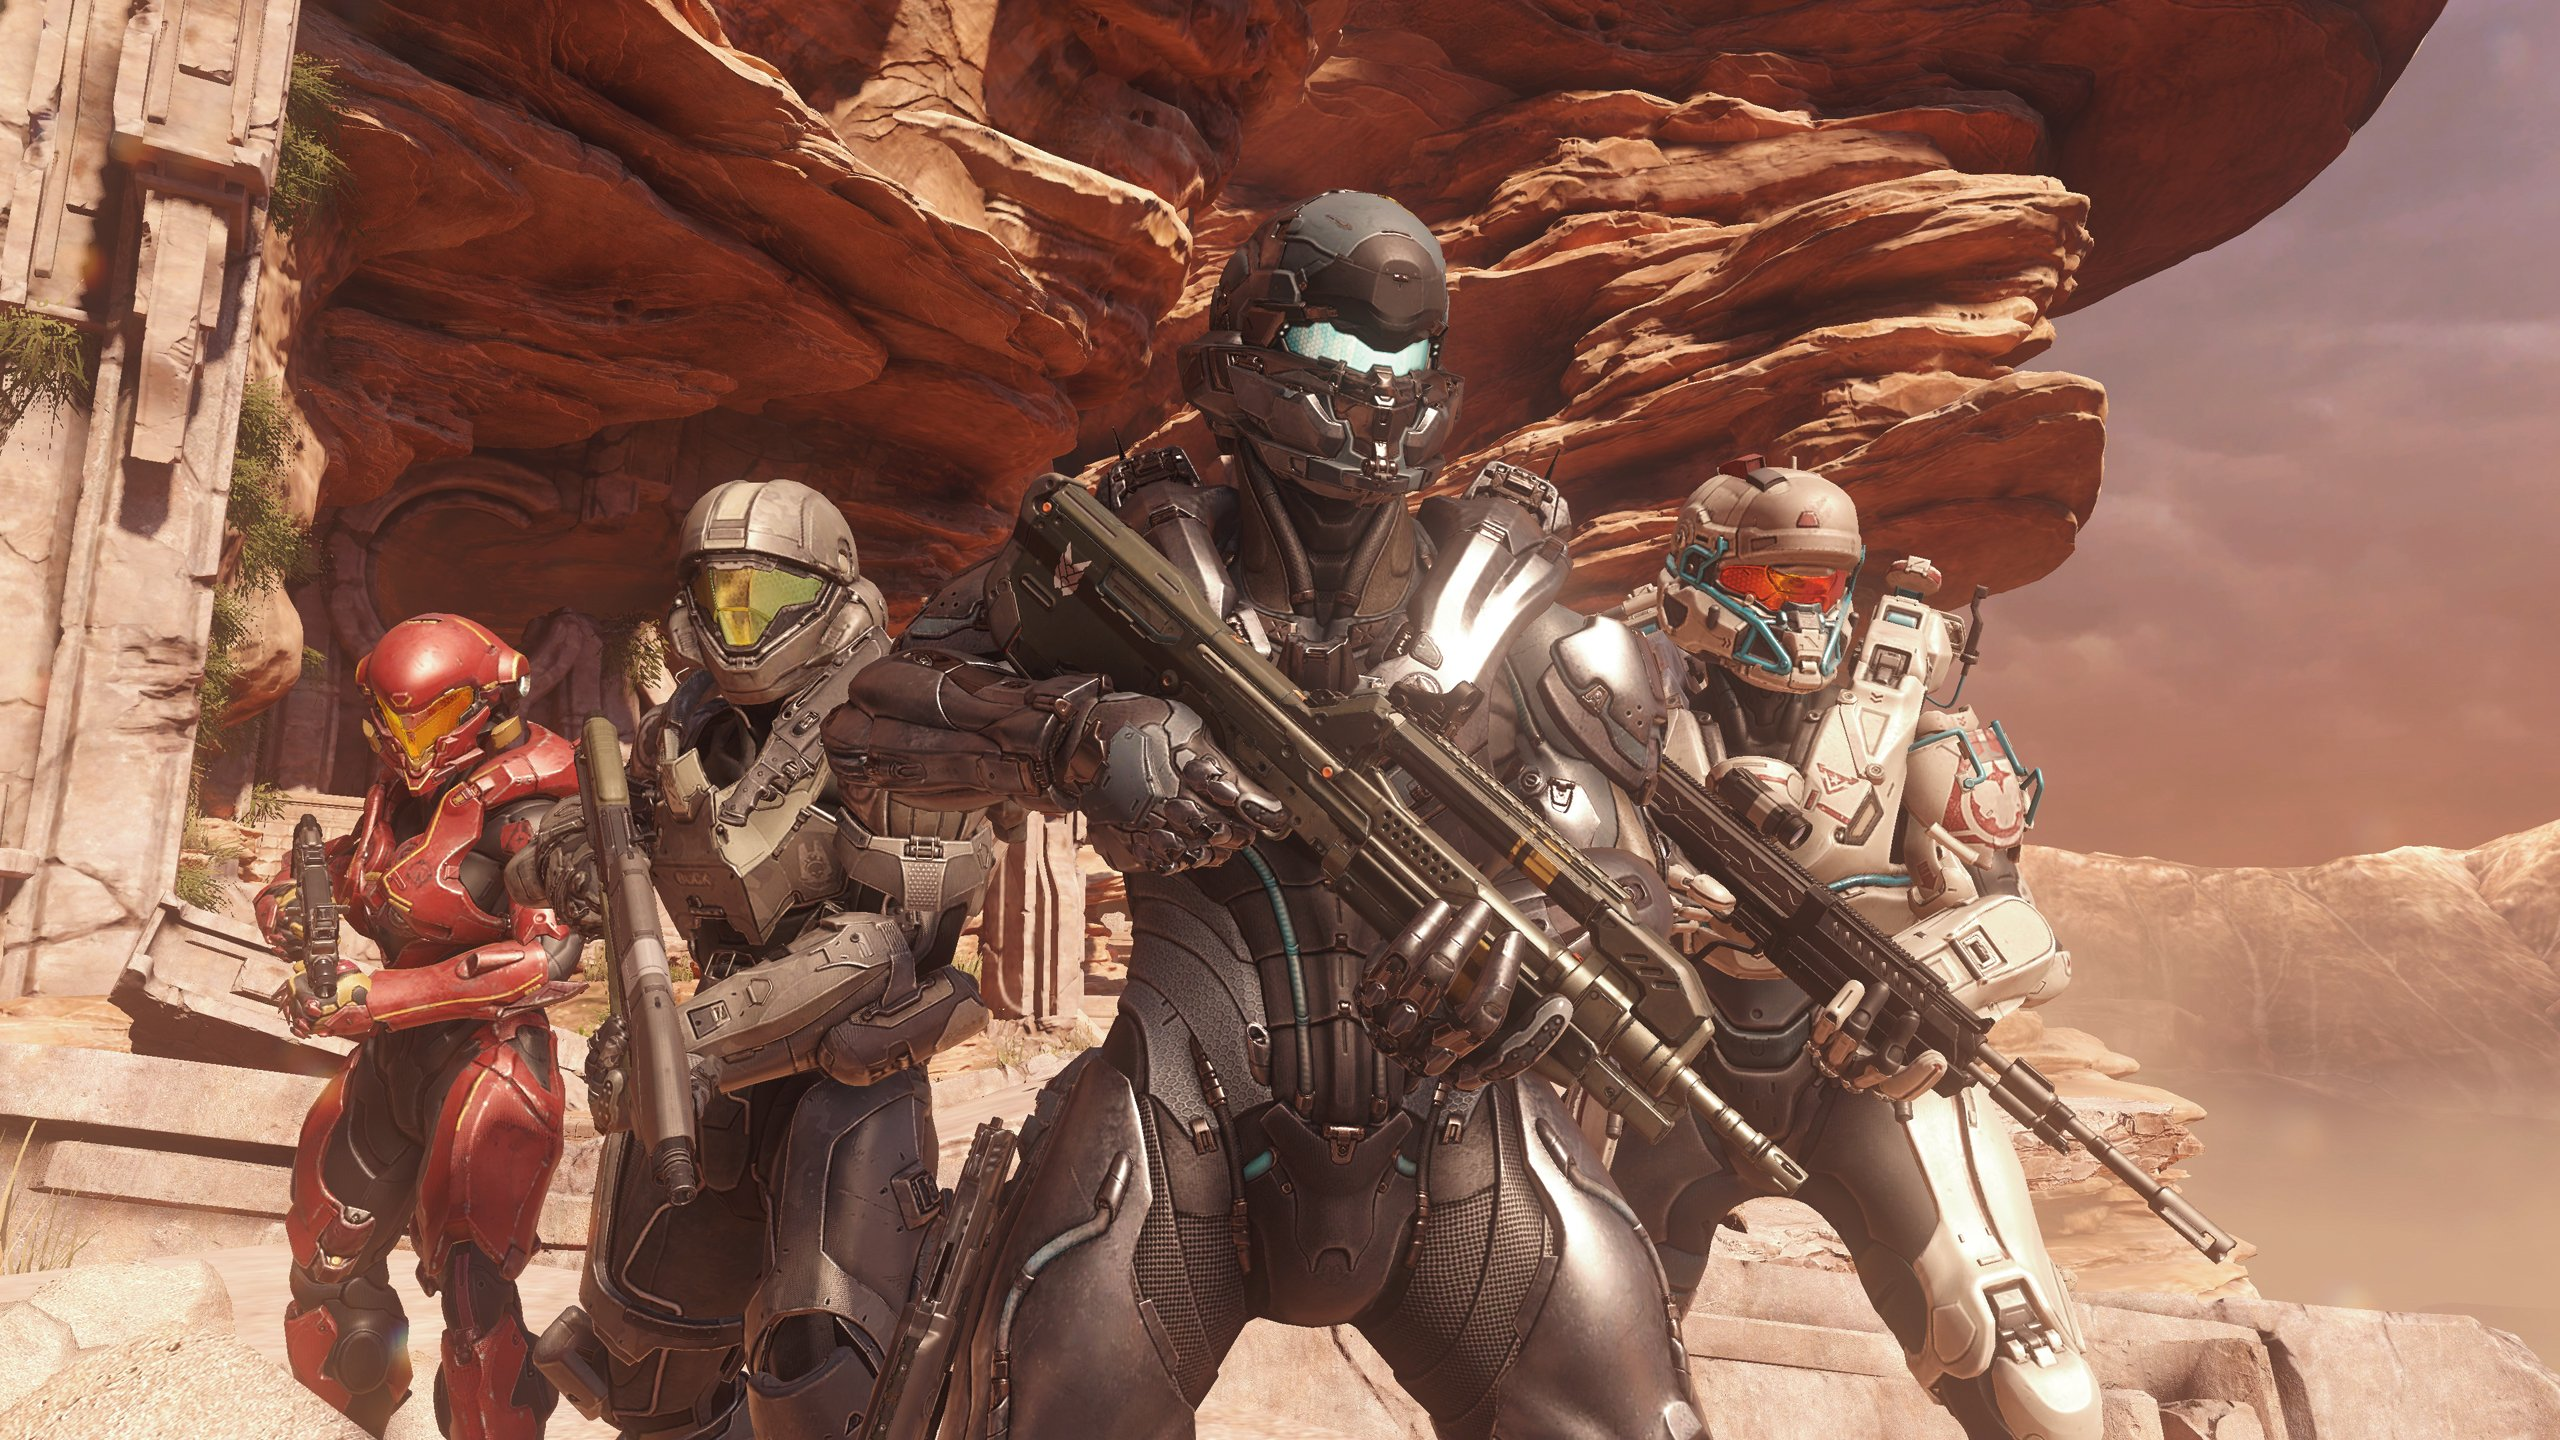 Halo 5: Guardians preview photo